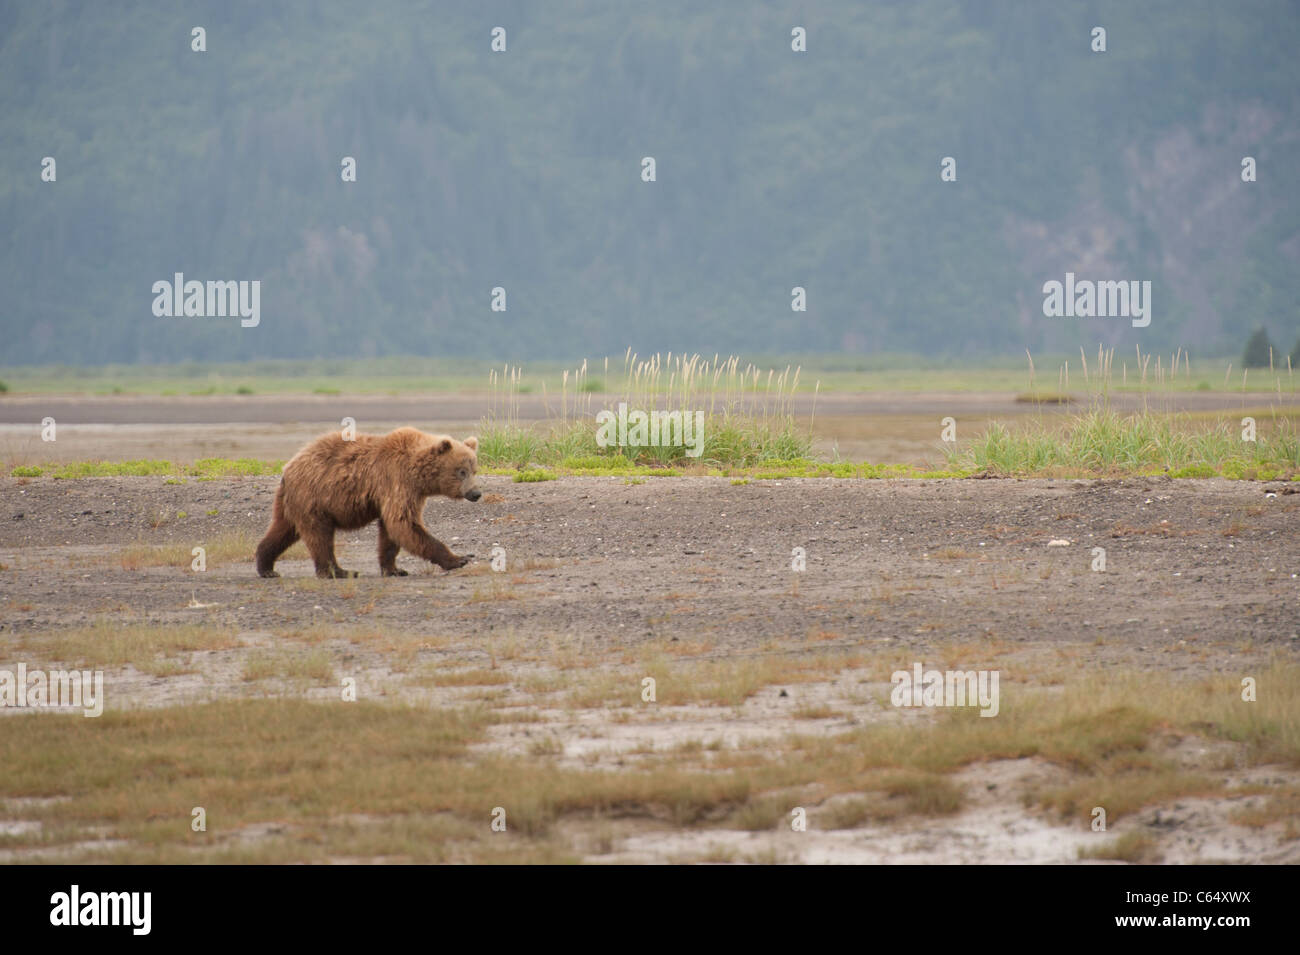 Brown Grizzly Bear walking on Beach - Stock Image